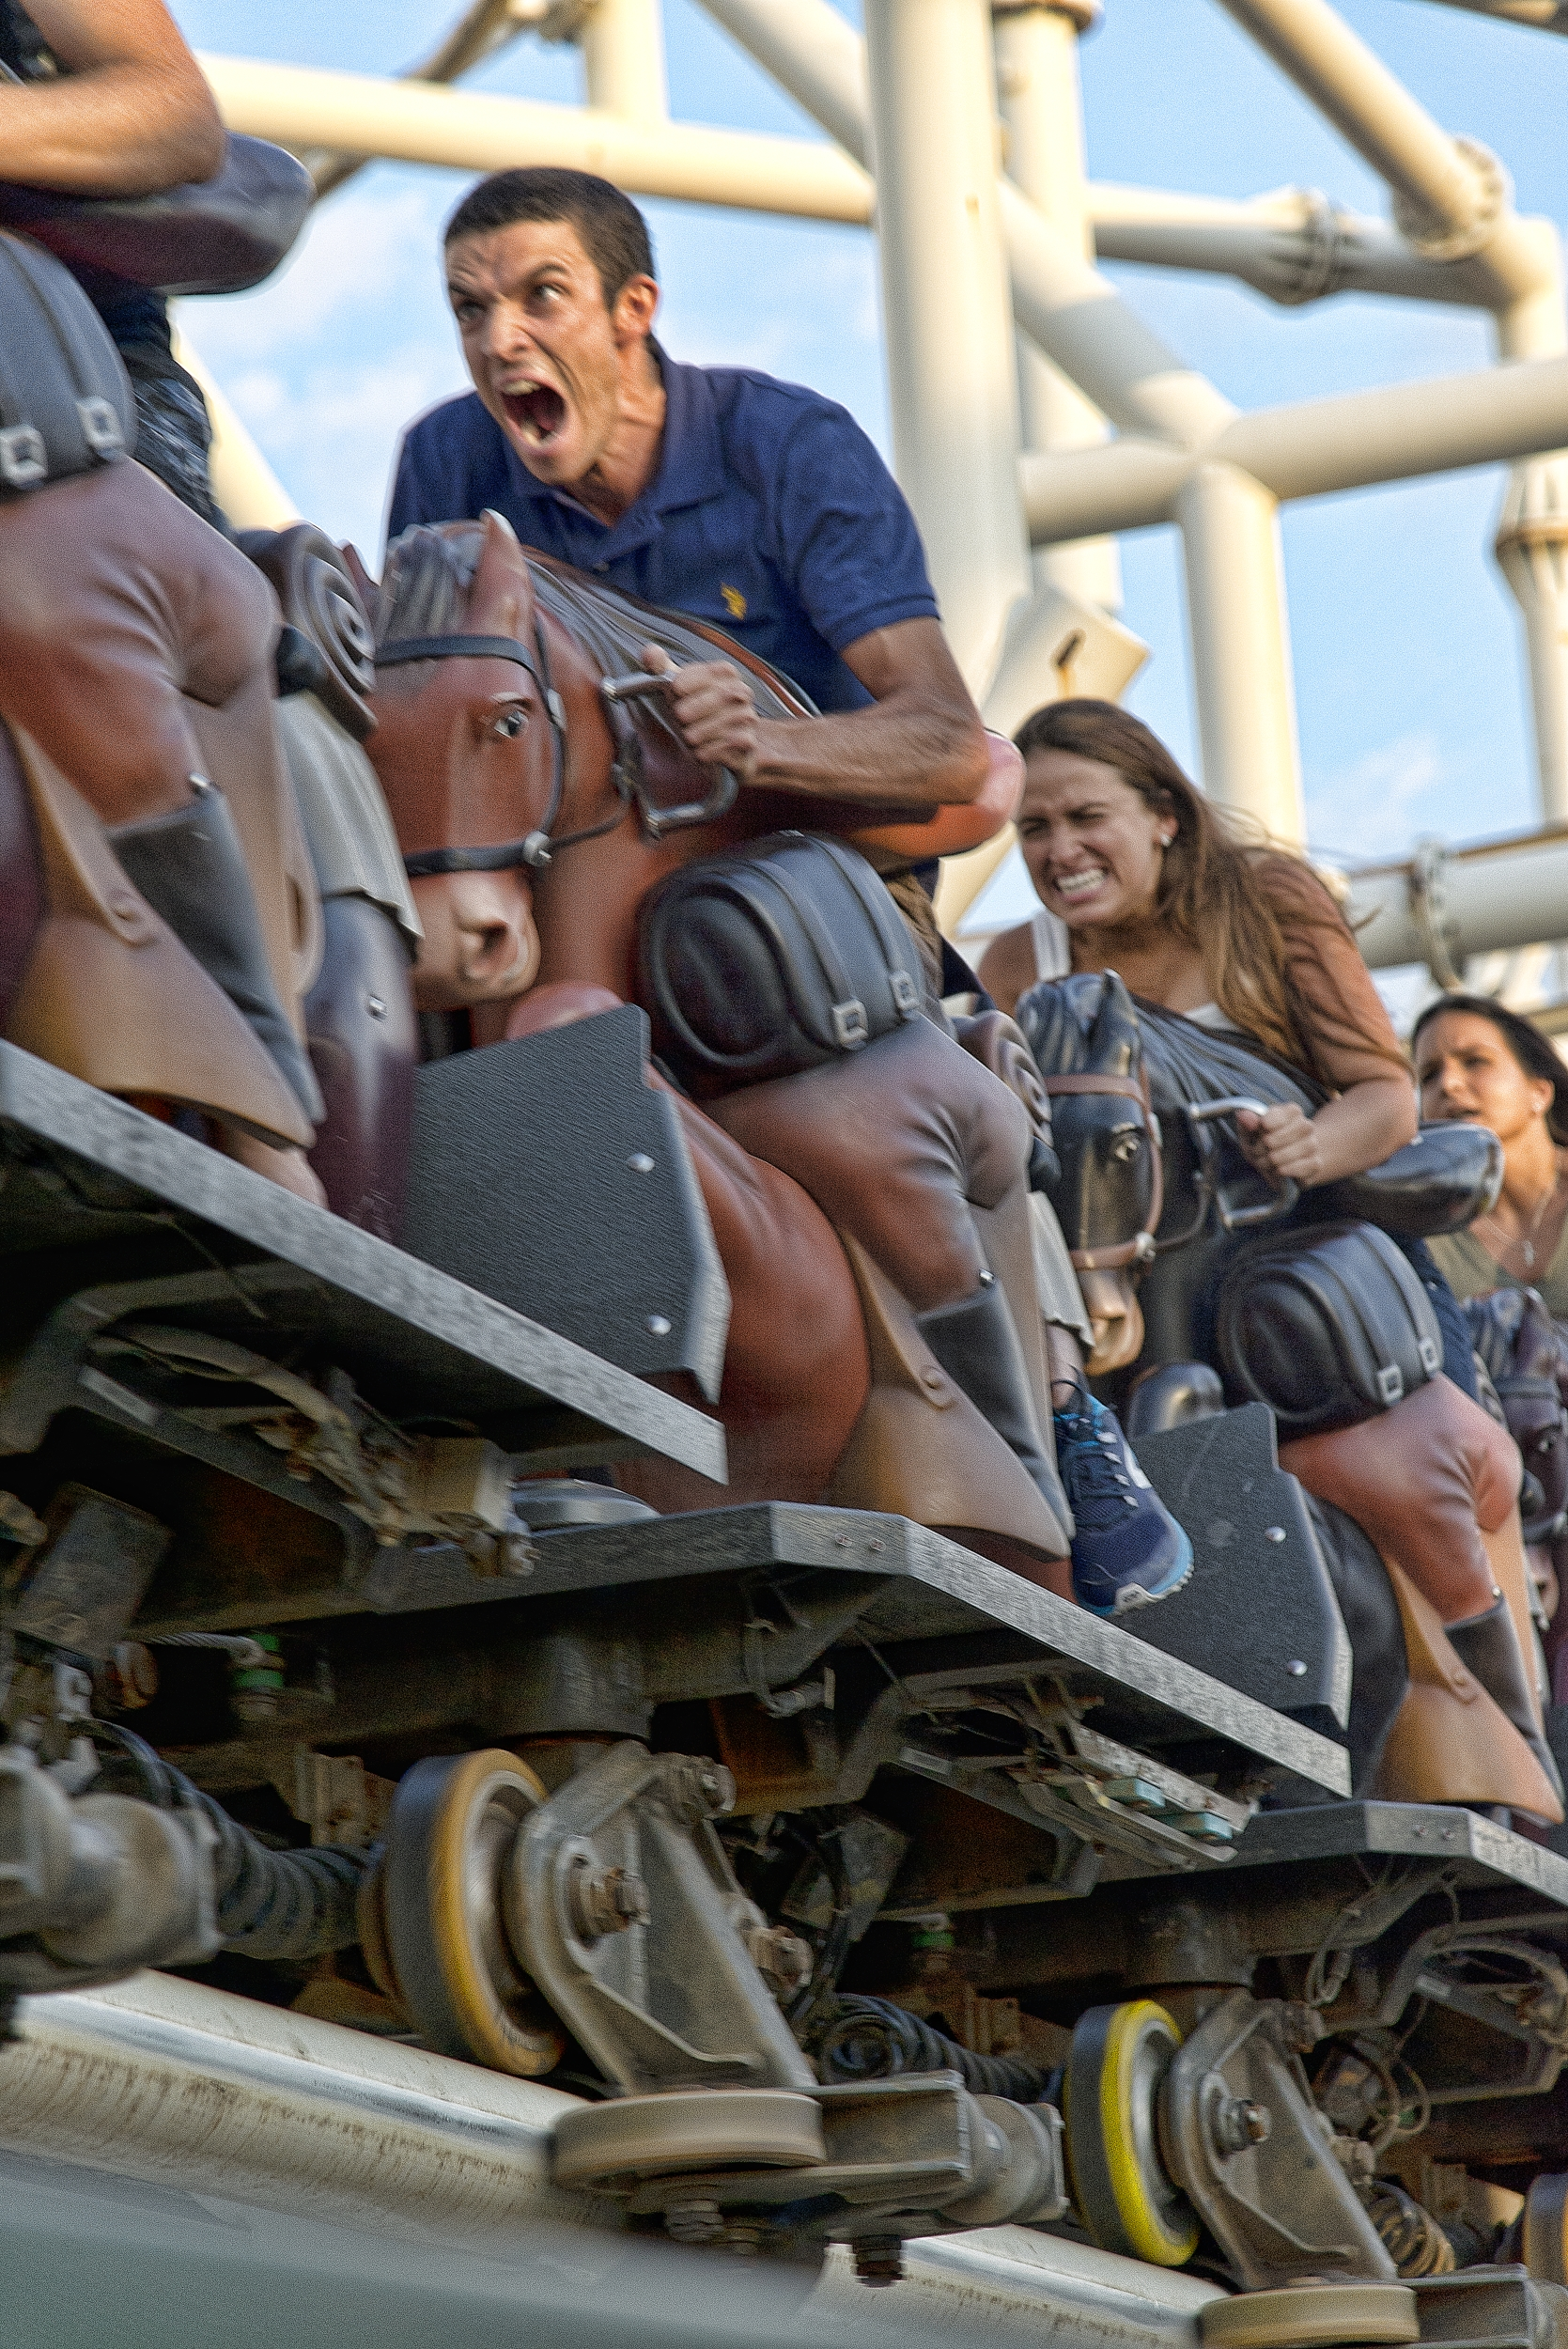 Riding the Cyclone